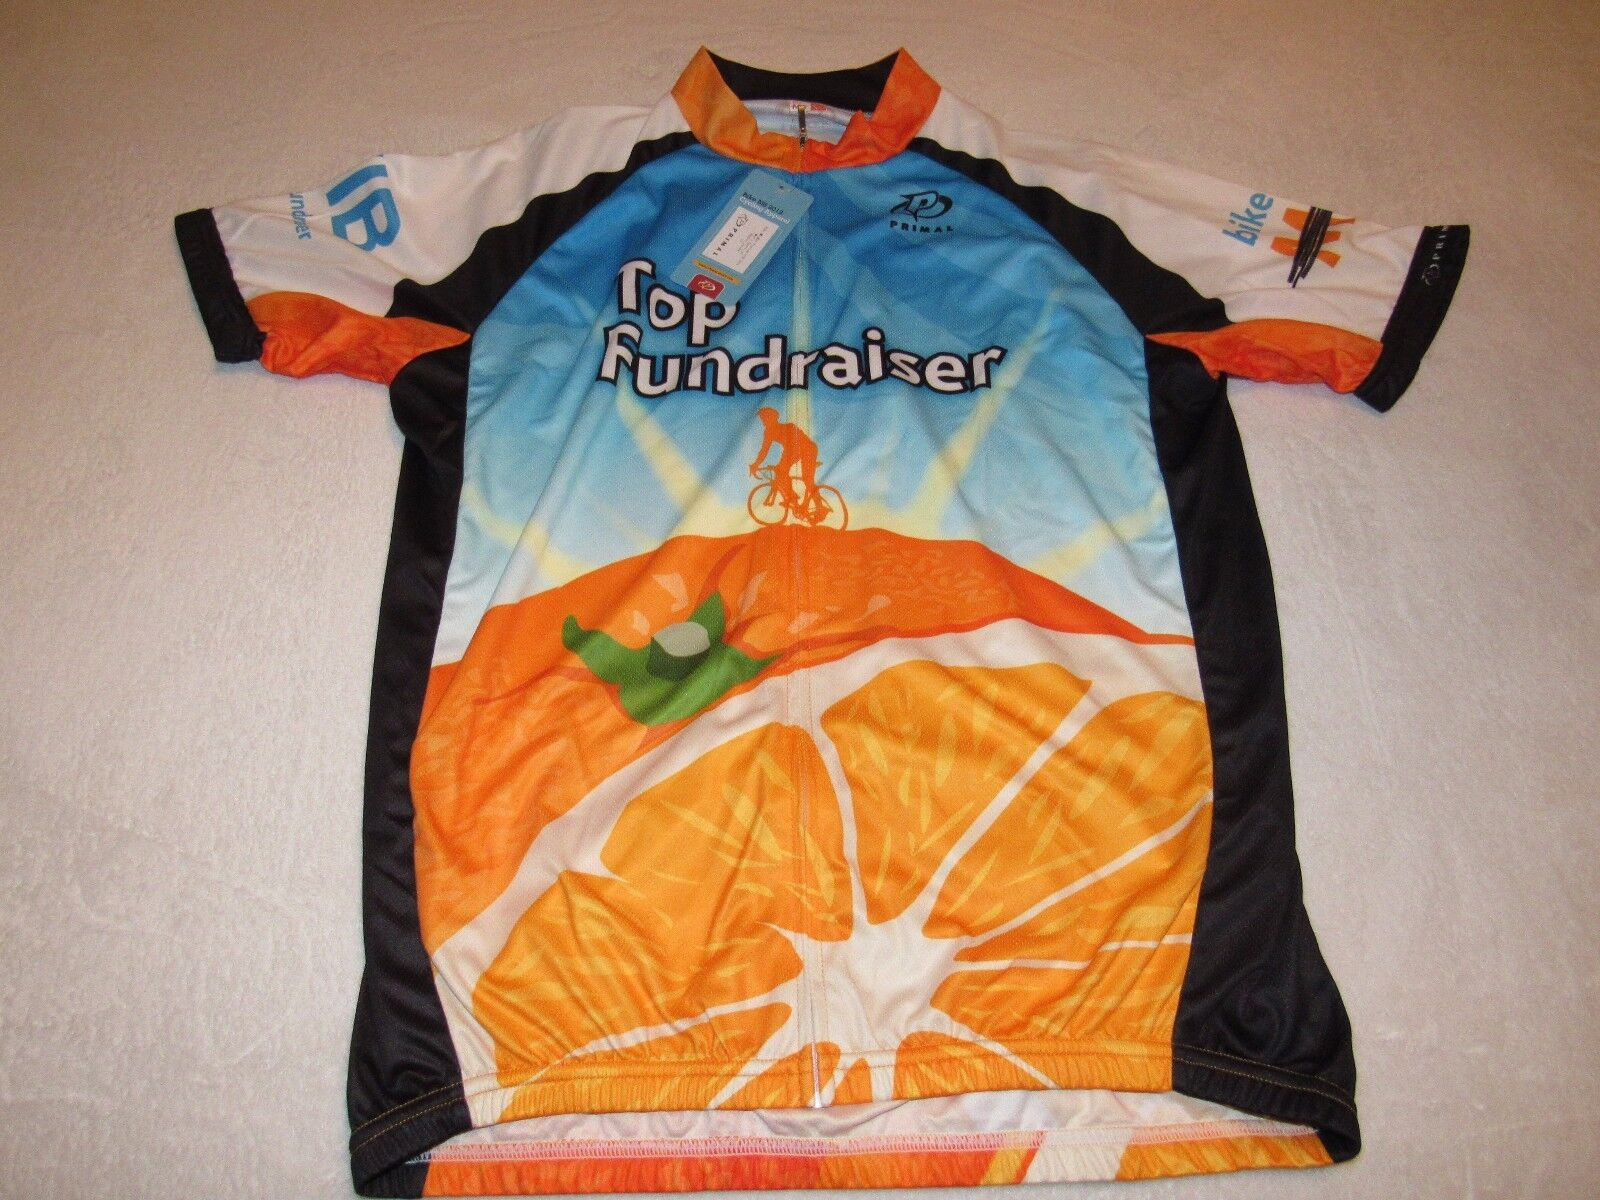 NWT MENS CYCLING JERSEY  PRIMAL BIKE MS THE CITRUS TOUR LARGE TOP FUNDRAISER  hot sports